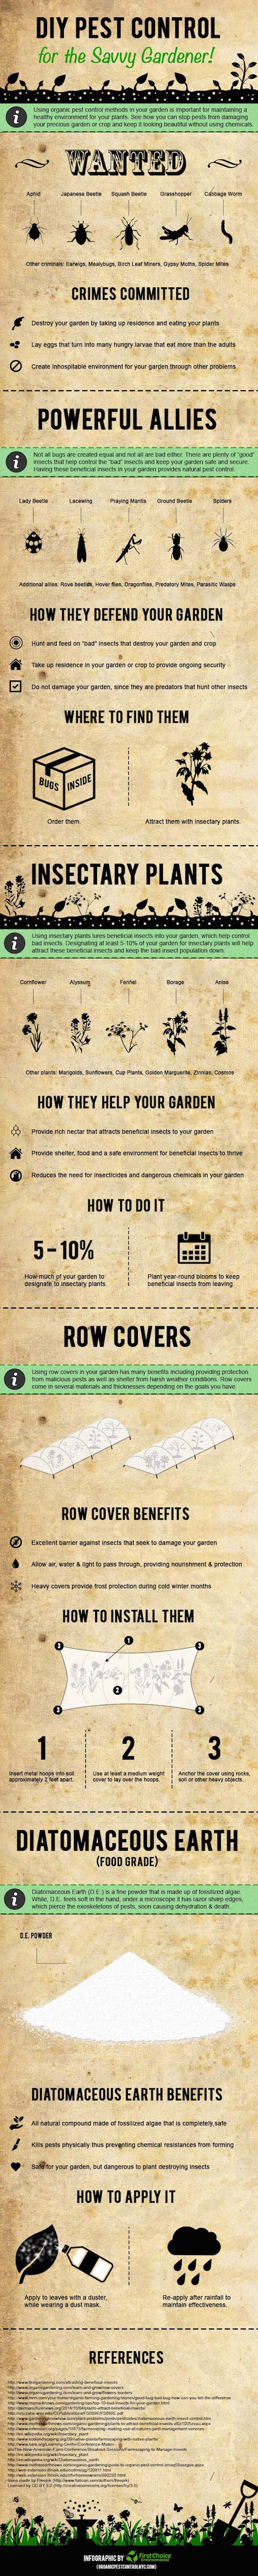 Infographic, First Choice environmental, organic gardening, organic pest control, diy pest control, pest control, reader submitted content